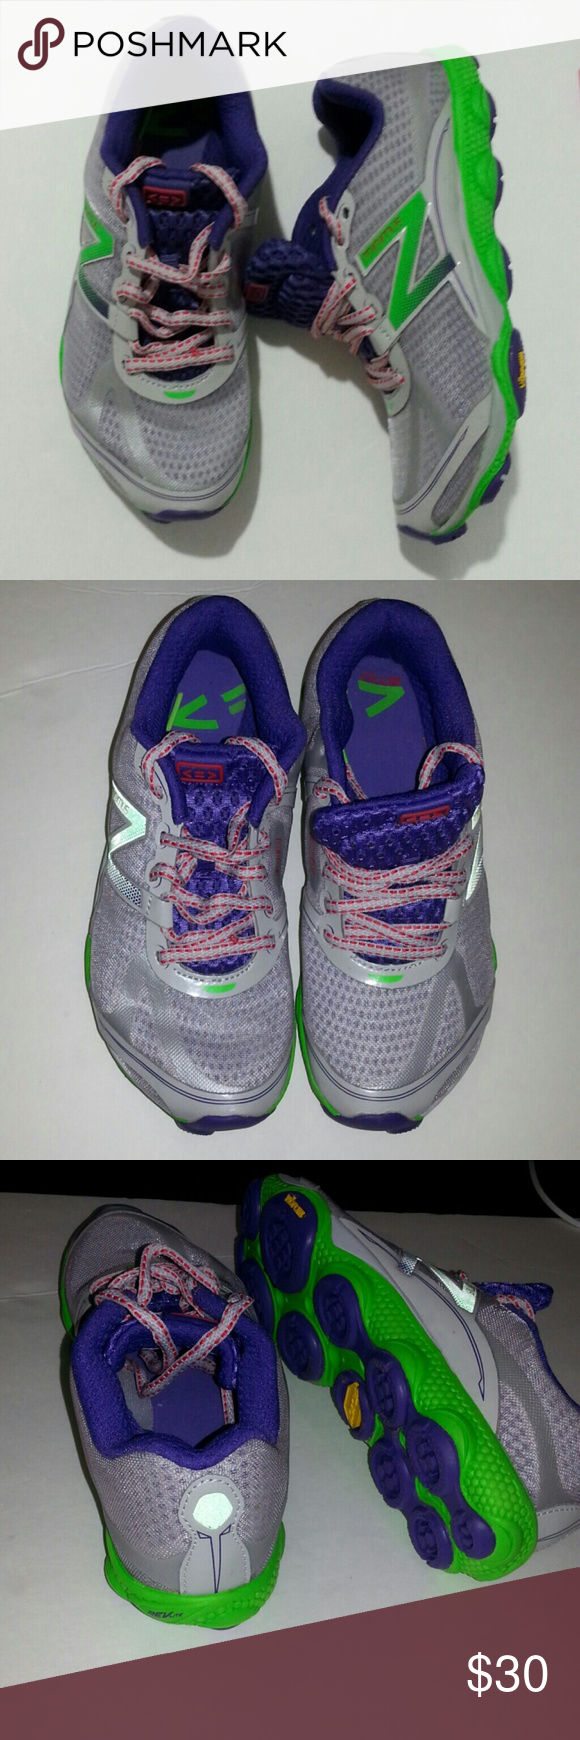 New Balance Shoes Brand: New Balance & Vibram Size: 6 Gender: Woman Like New Fast Shipping Bunddles Accepted Holds: Only For 24 Hours. Follow Me For New Items Every Week New Balance Shoes Athletic Shoes